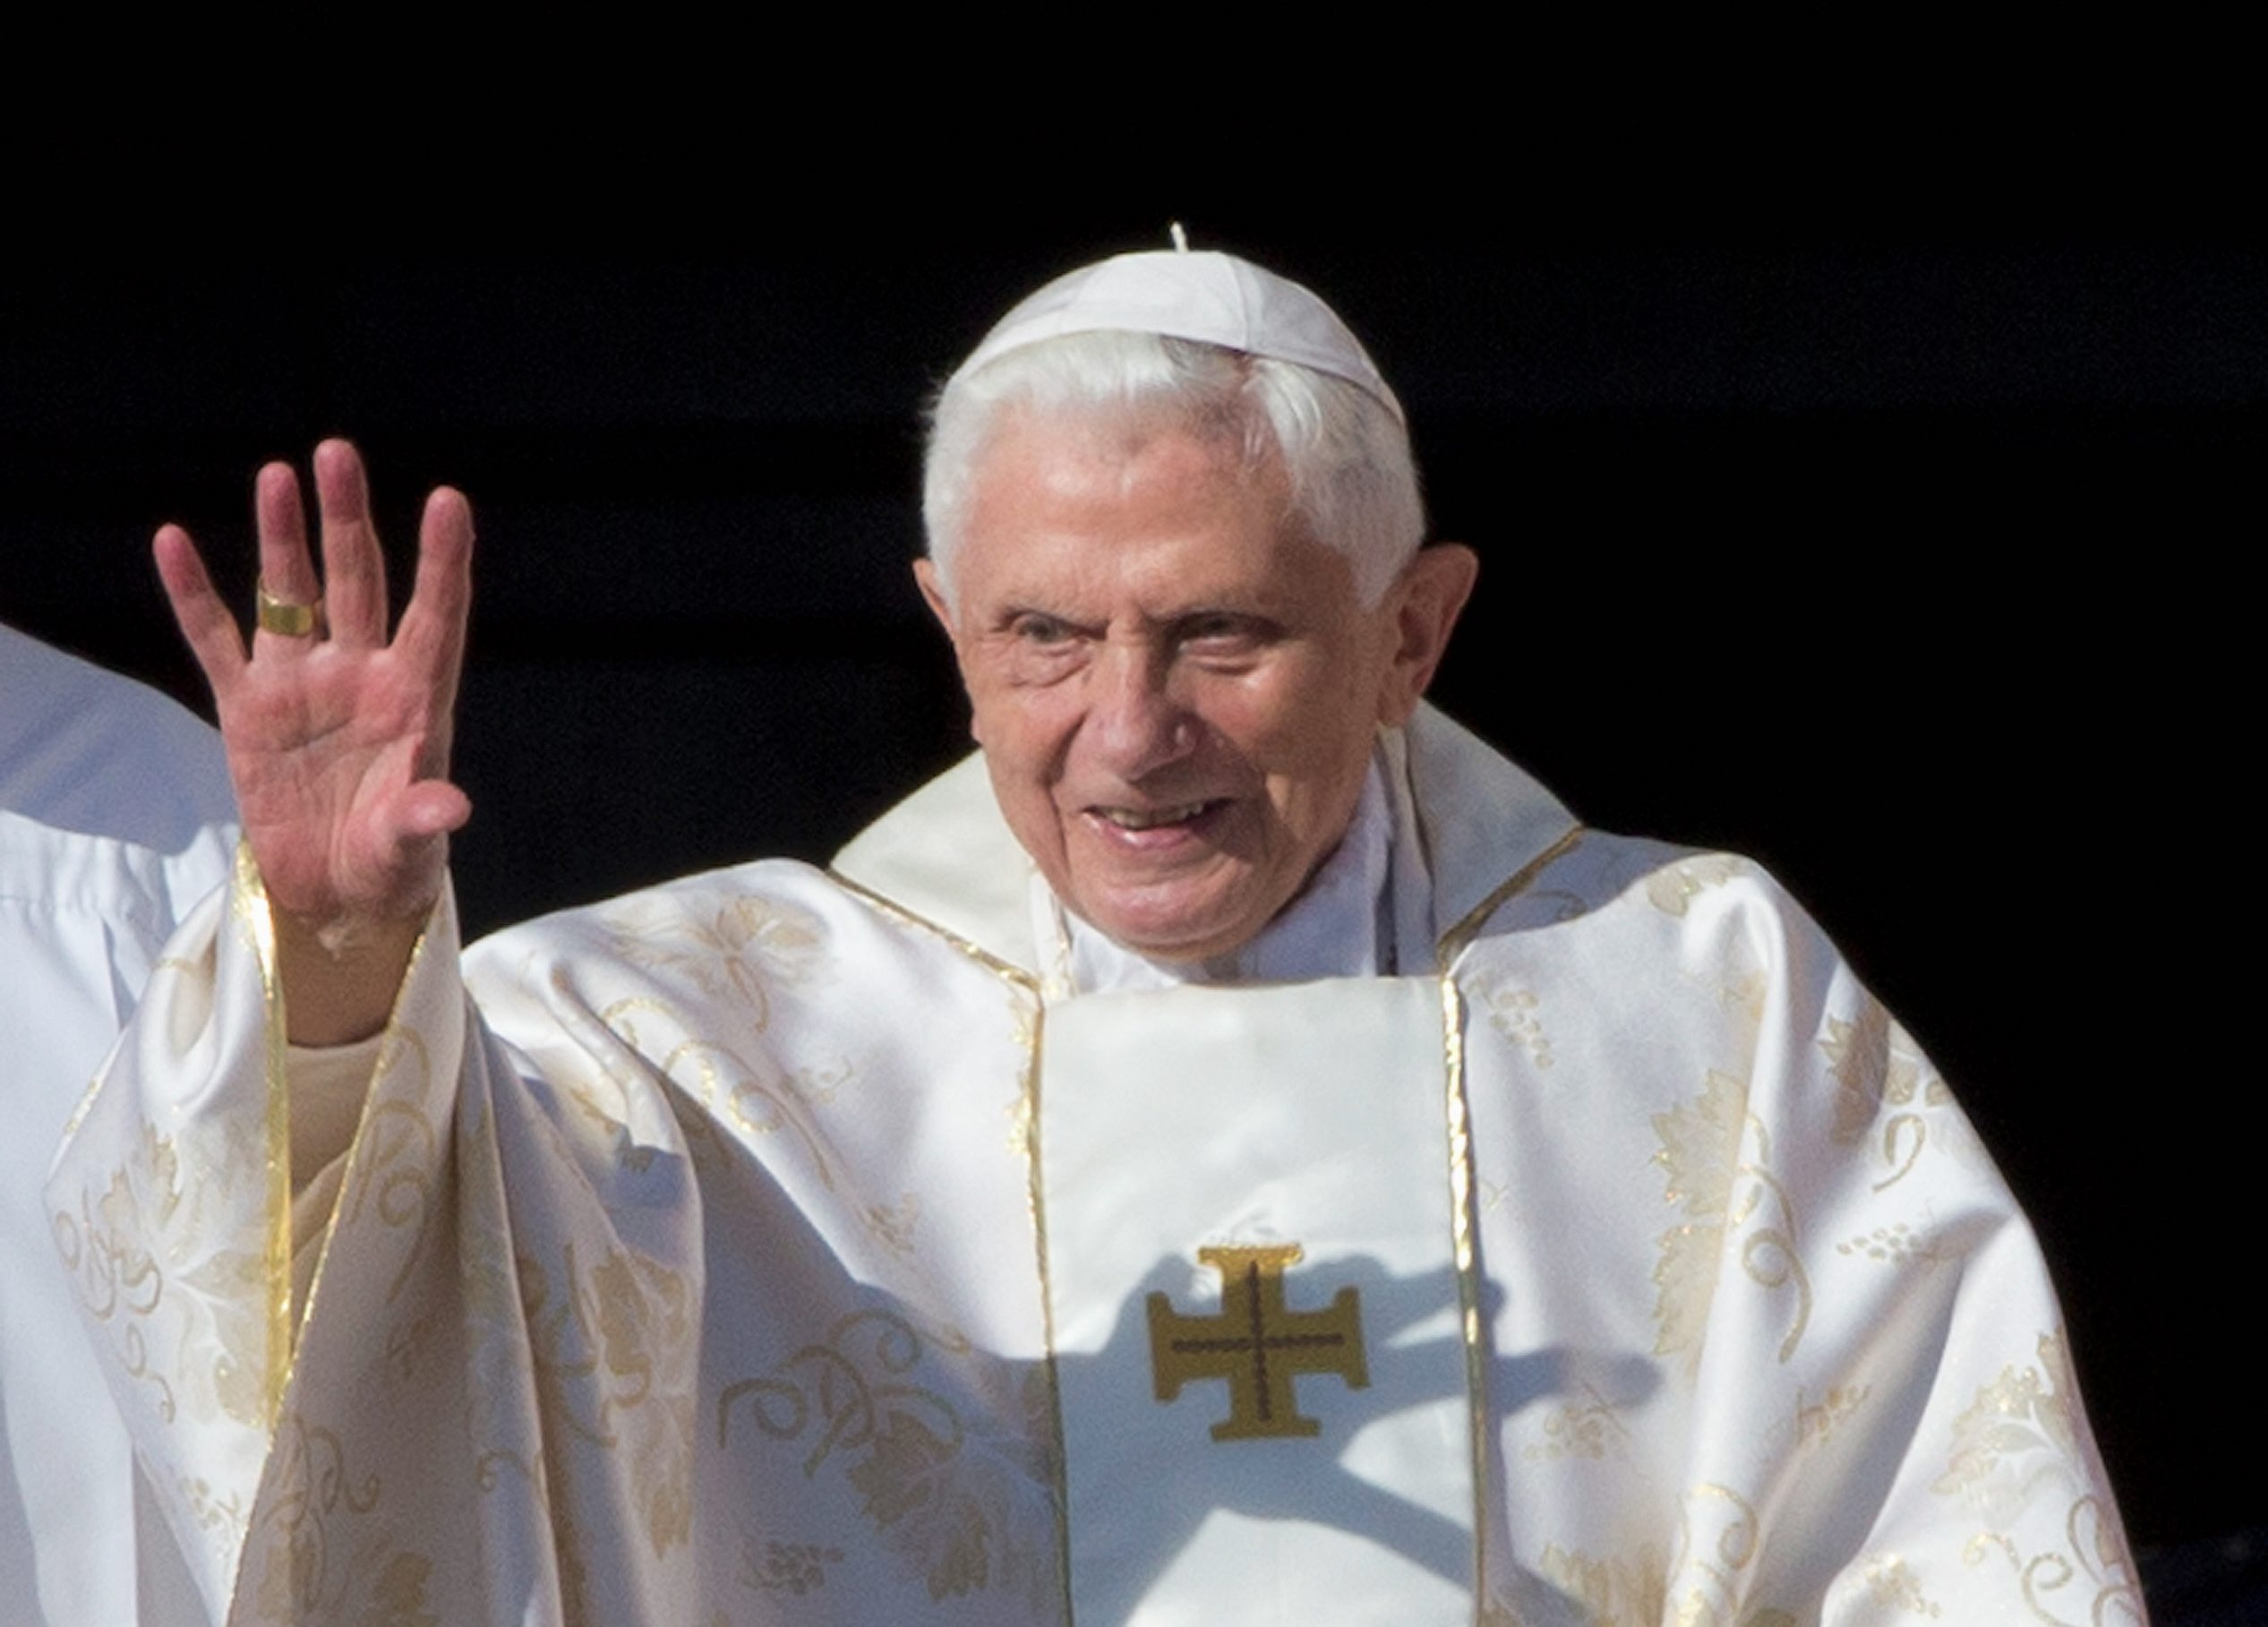 Benedict XVI blames the sexual revolution for the Catholic Church's sex abuse crisis